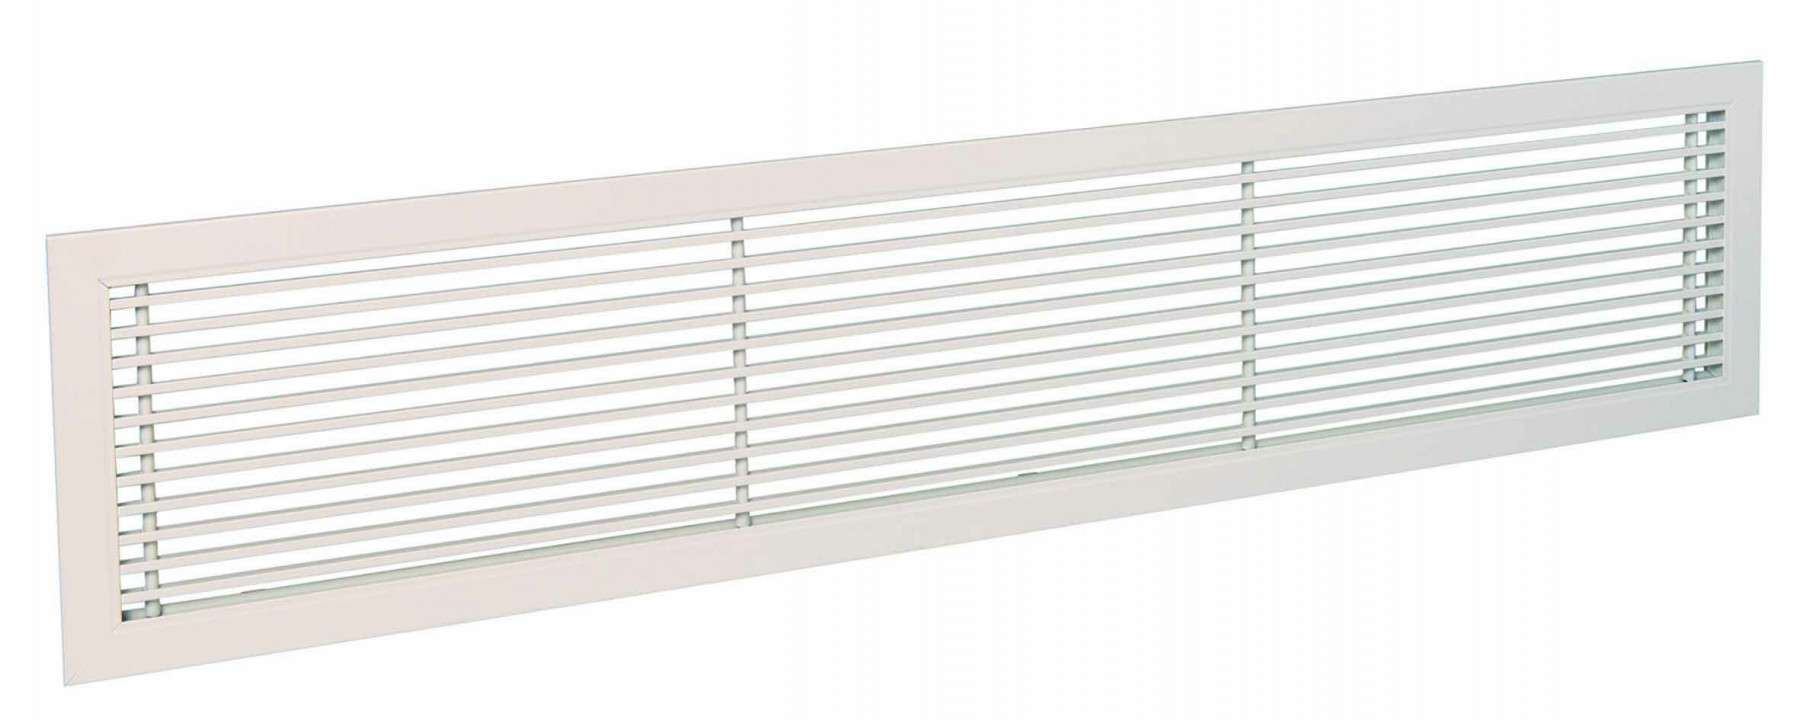 Grilles intérieures GRIDLINED WALL F3 600X100 RAL9010 Aldes 11050566